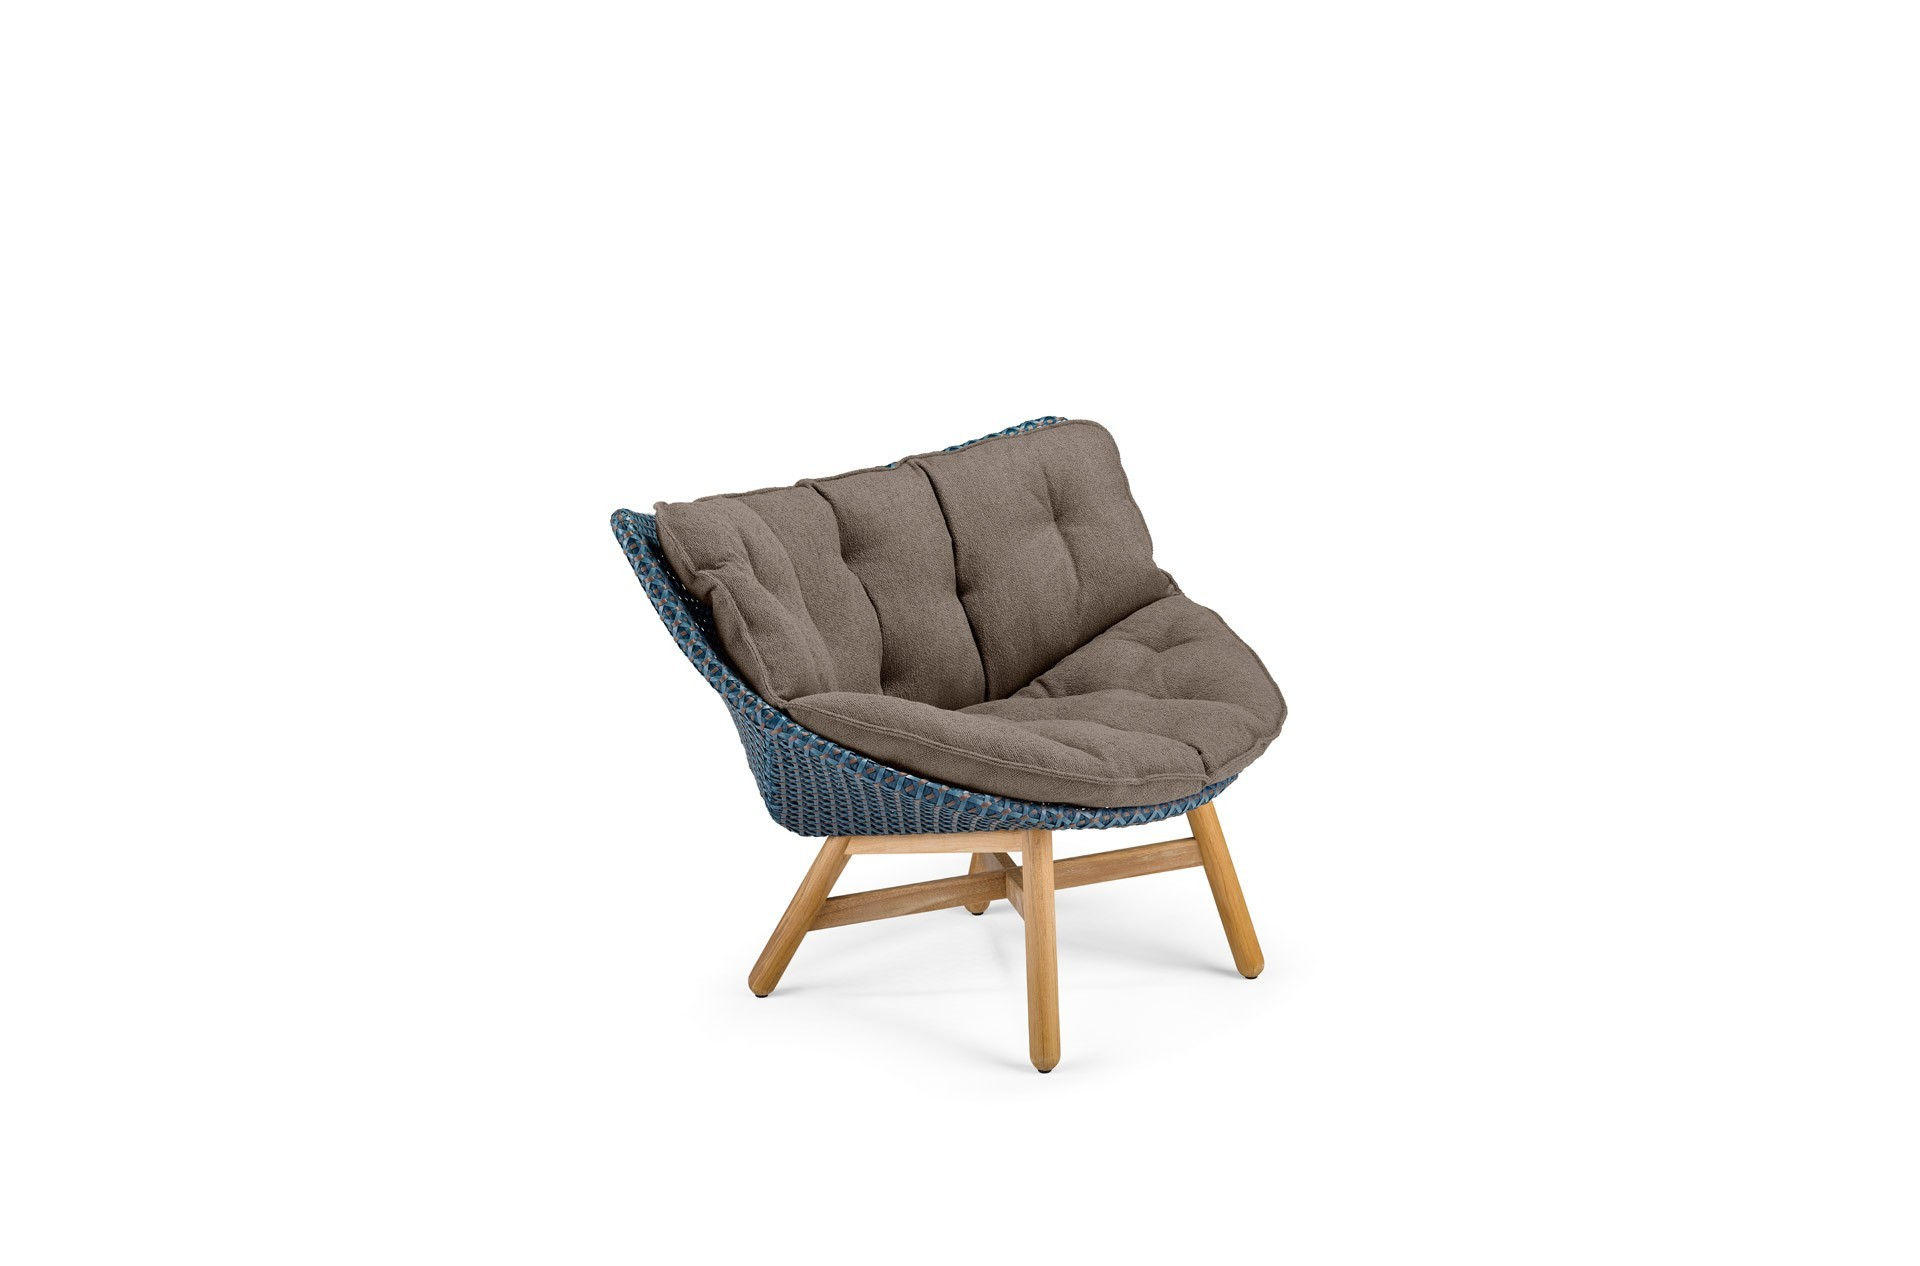 Dedon Mbrace Dedon Mbrace Loungechair Atlantic